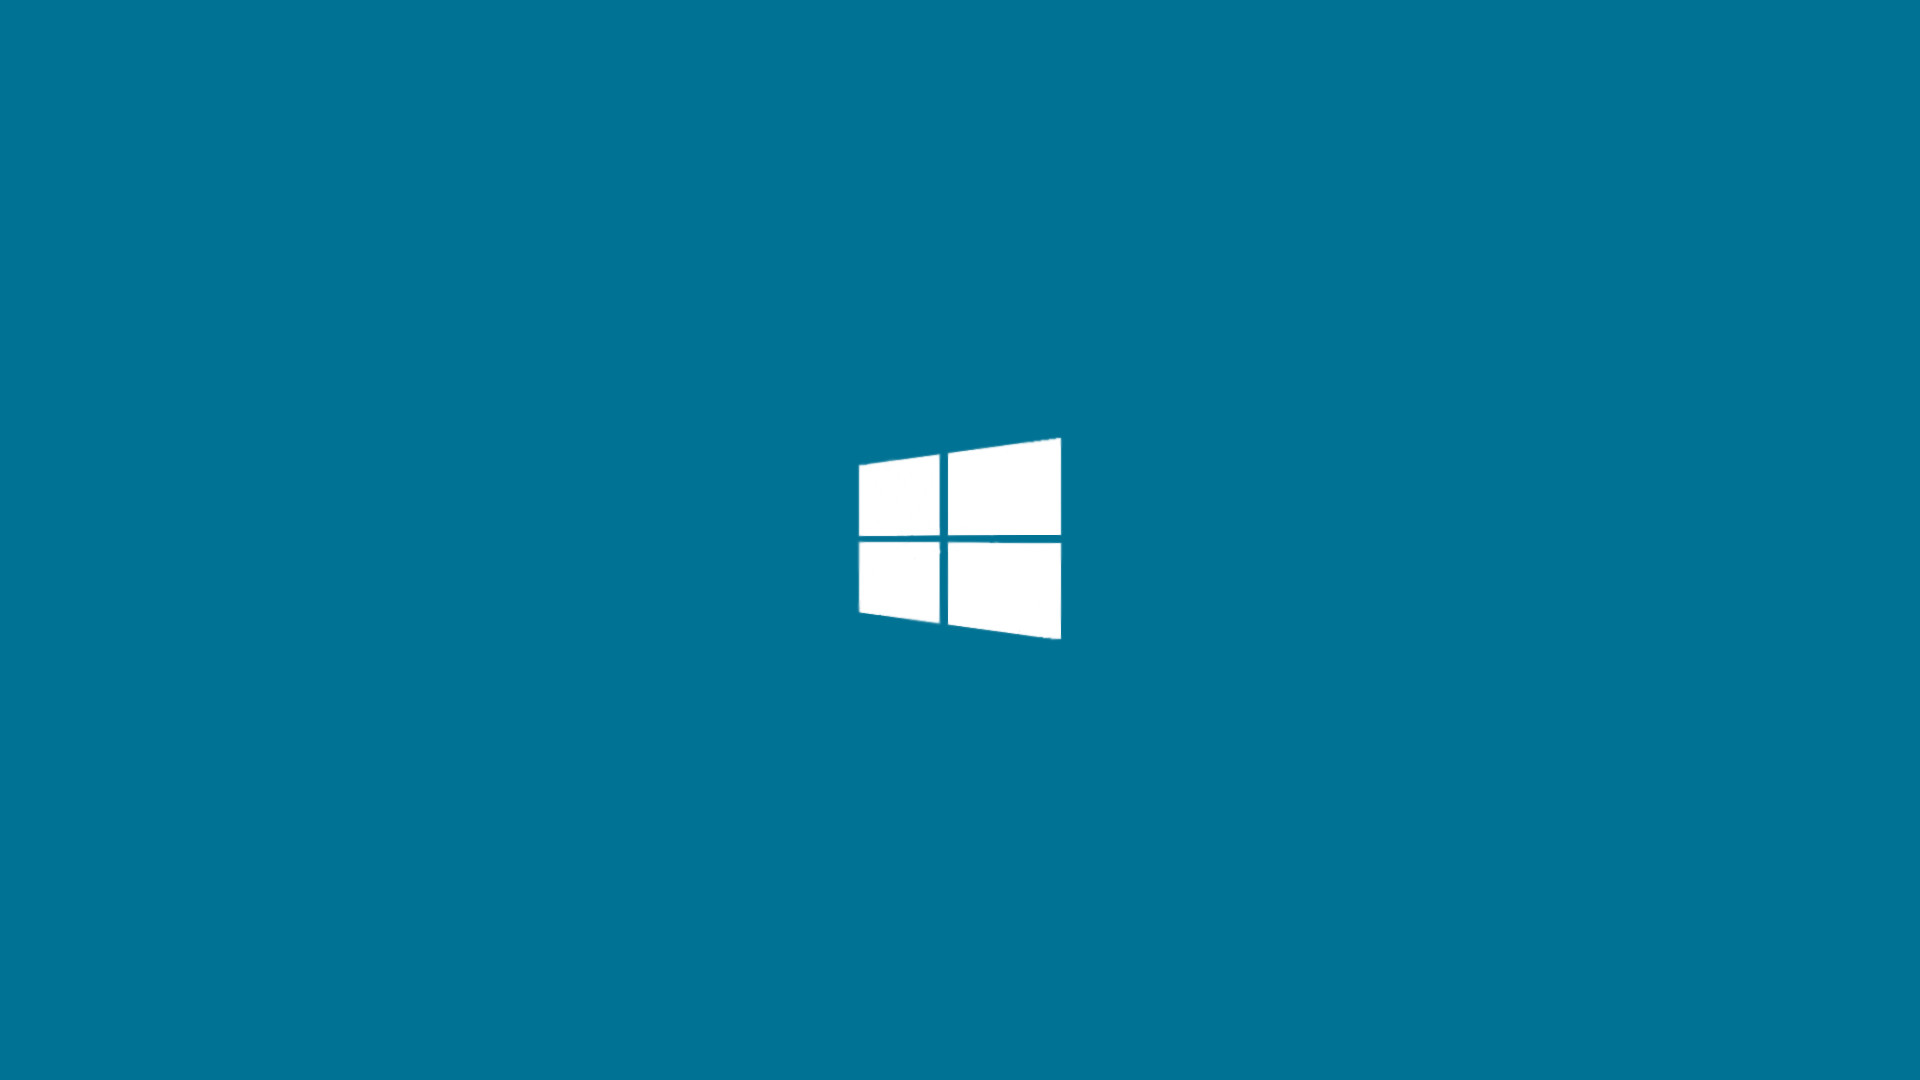 View topic – Windows 8 Photoshop Wallpapers (Updated) – BetaArchive